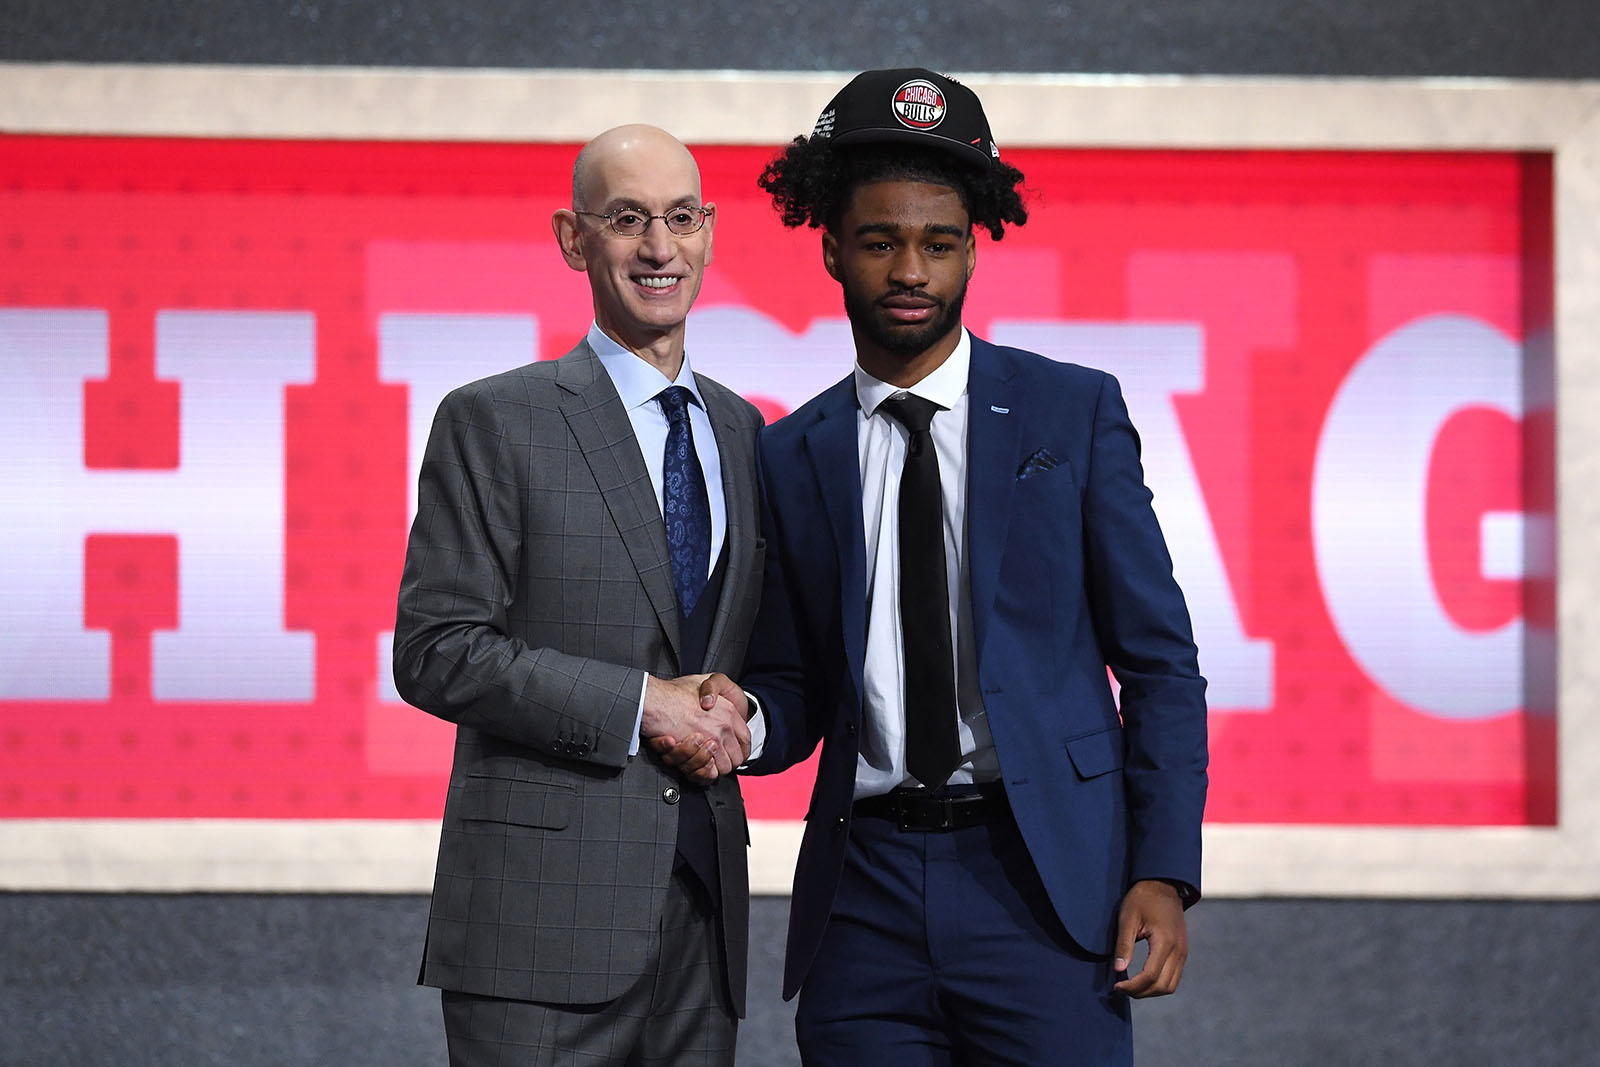 Coby White shakes hands with Adam Silver at the 2019 NBA Draft